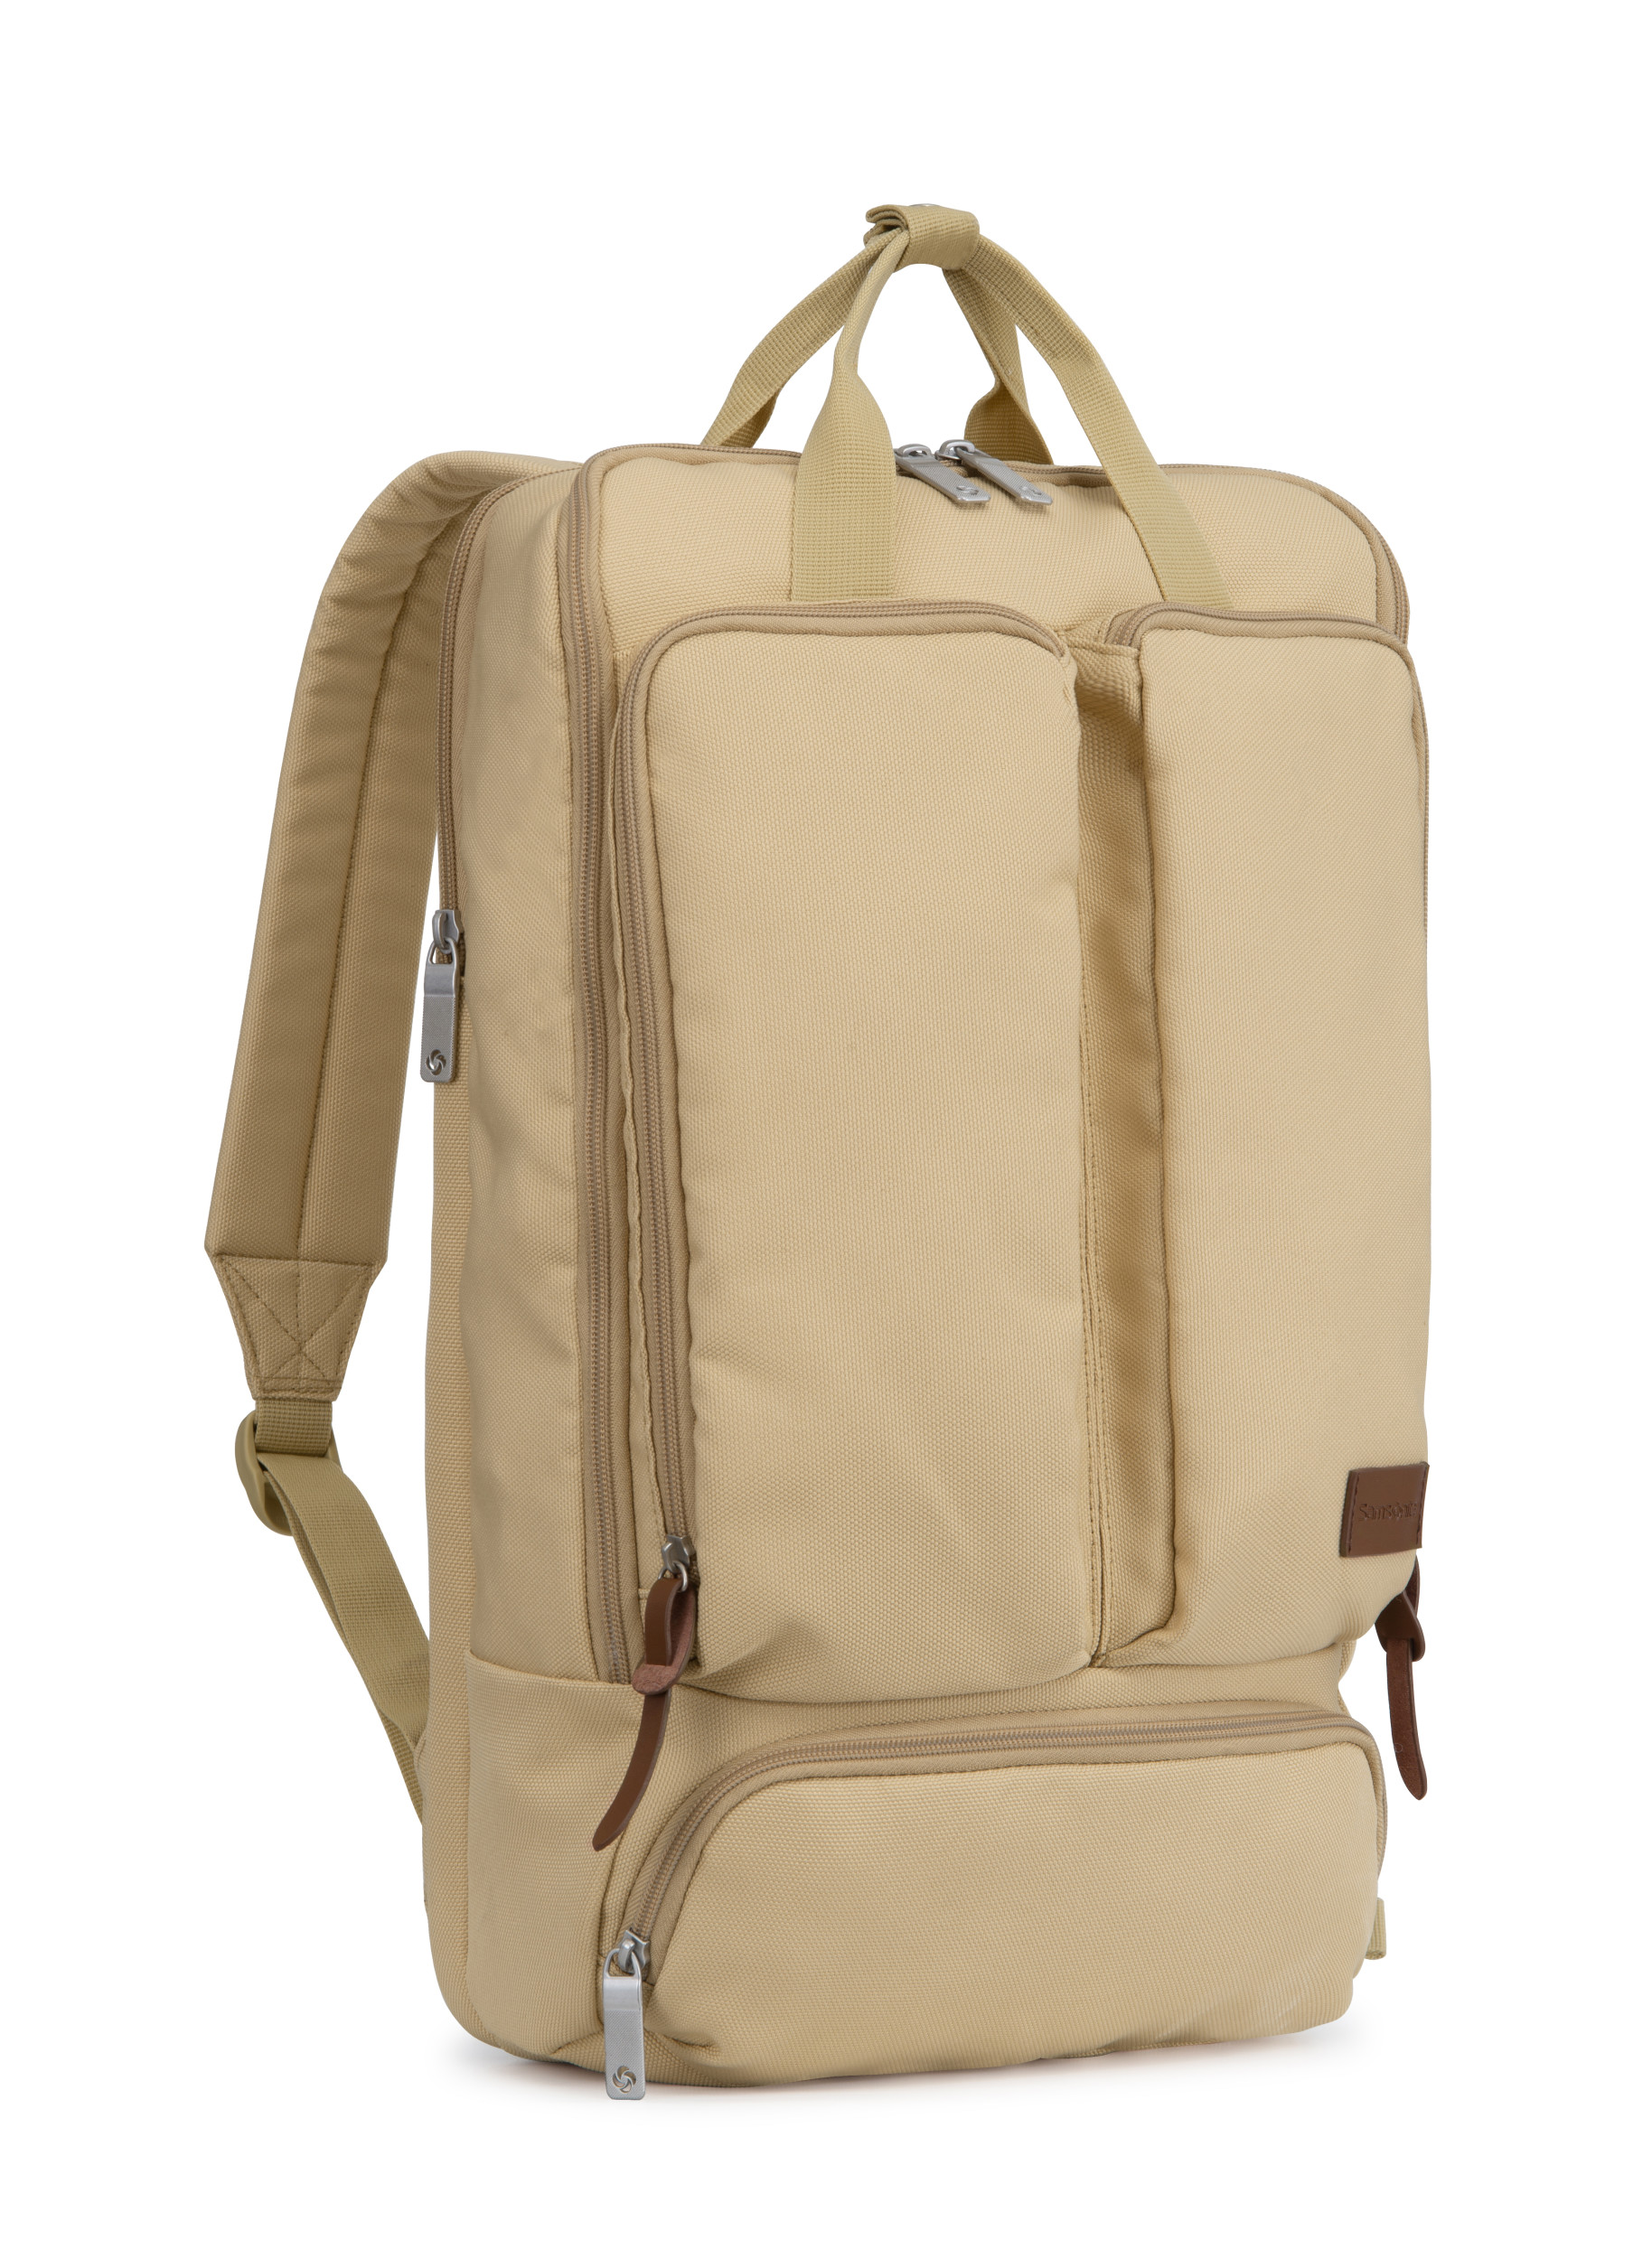 Samsonite 100048 - Morgan Computer Backpack